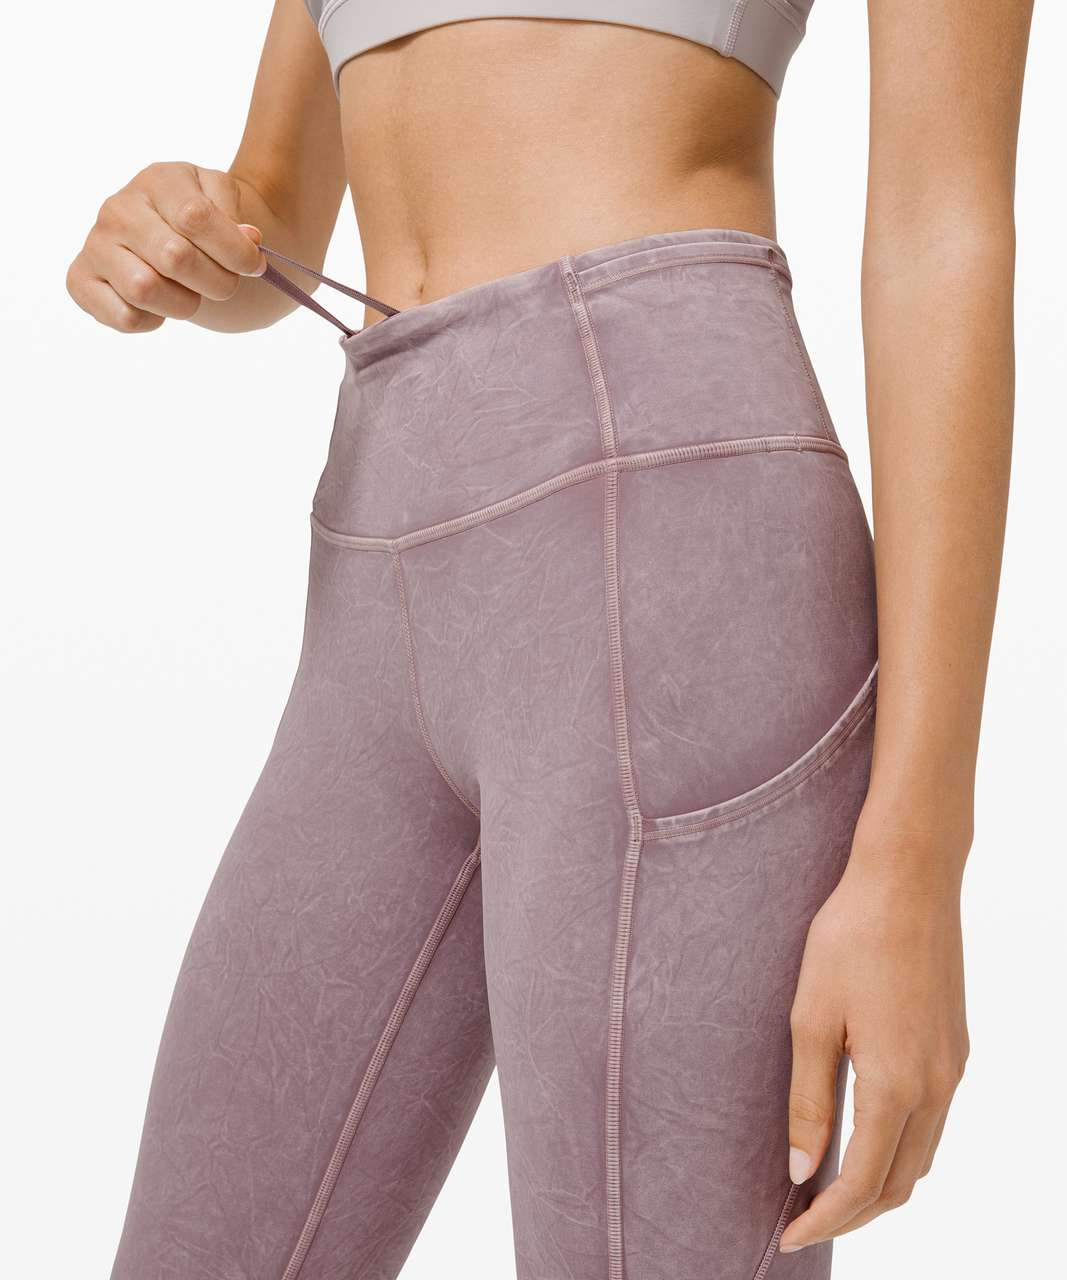 """Lululemon Fast and Free Tight II 25"""" Ice Dye *Non-Reflective - Ice Wash Violet Verbena"""